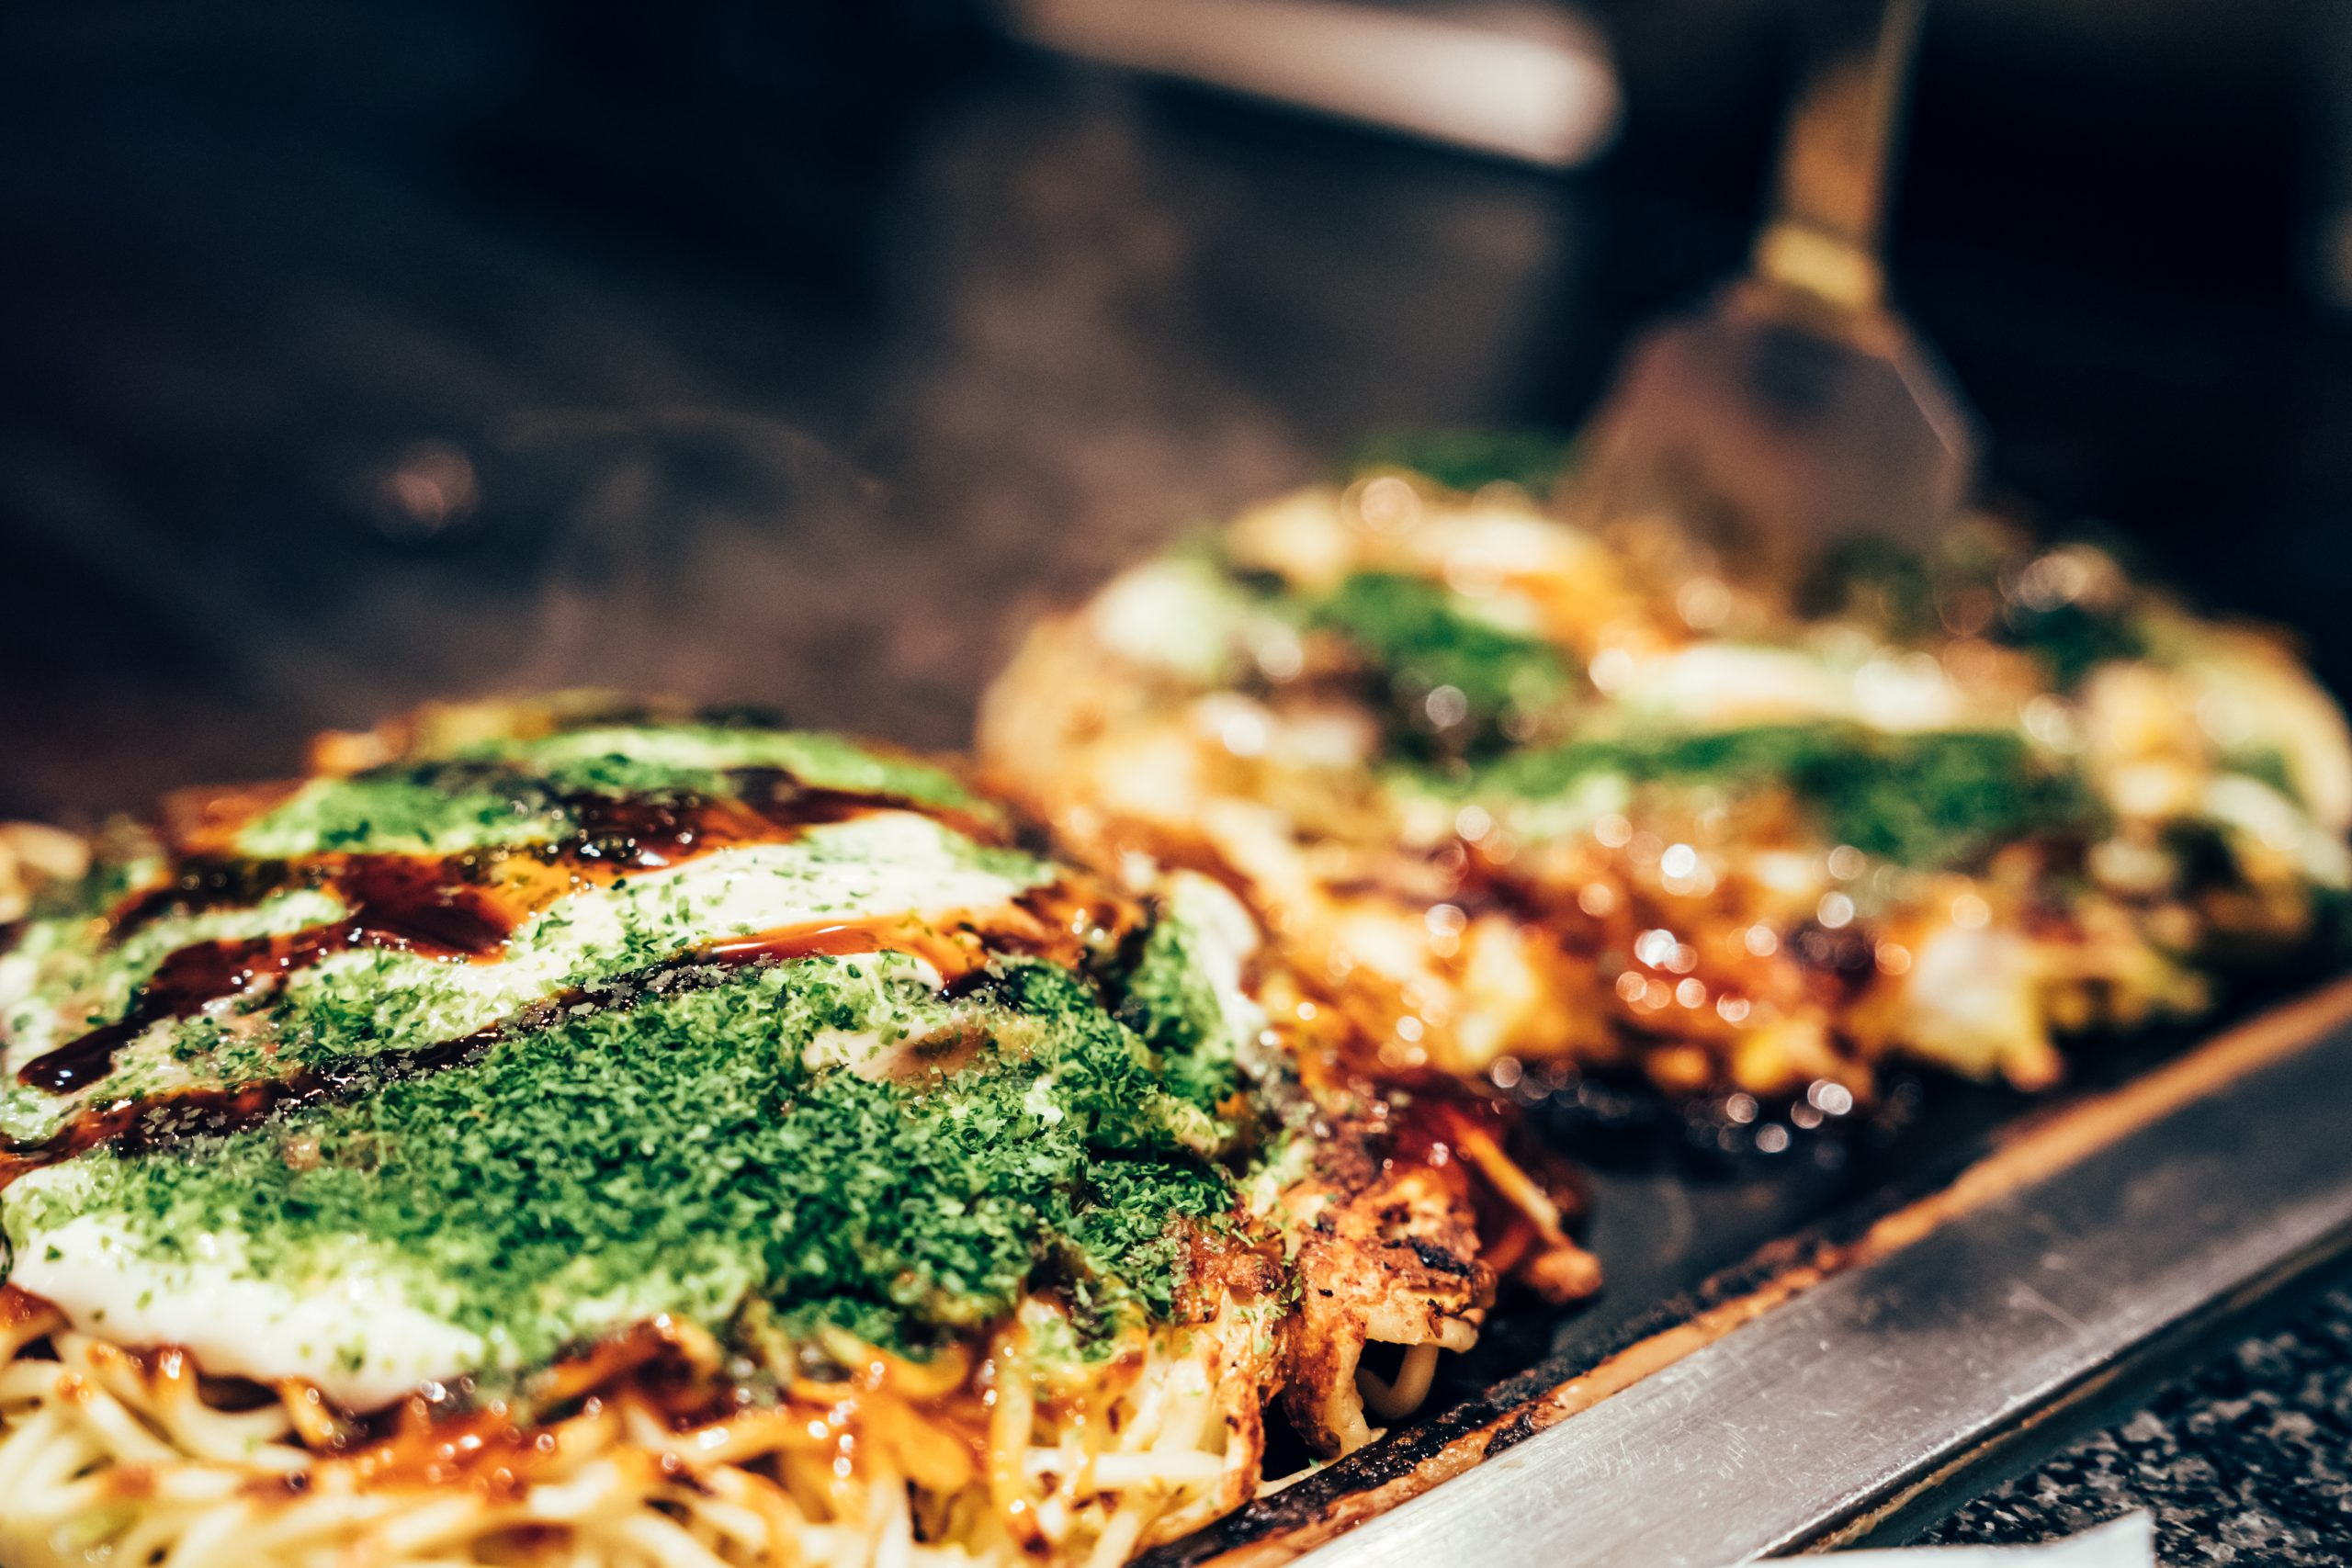 Learn How To Make Traditional Okonomiyaki On Your Osaka Market Tour And Cooking Class